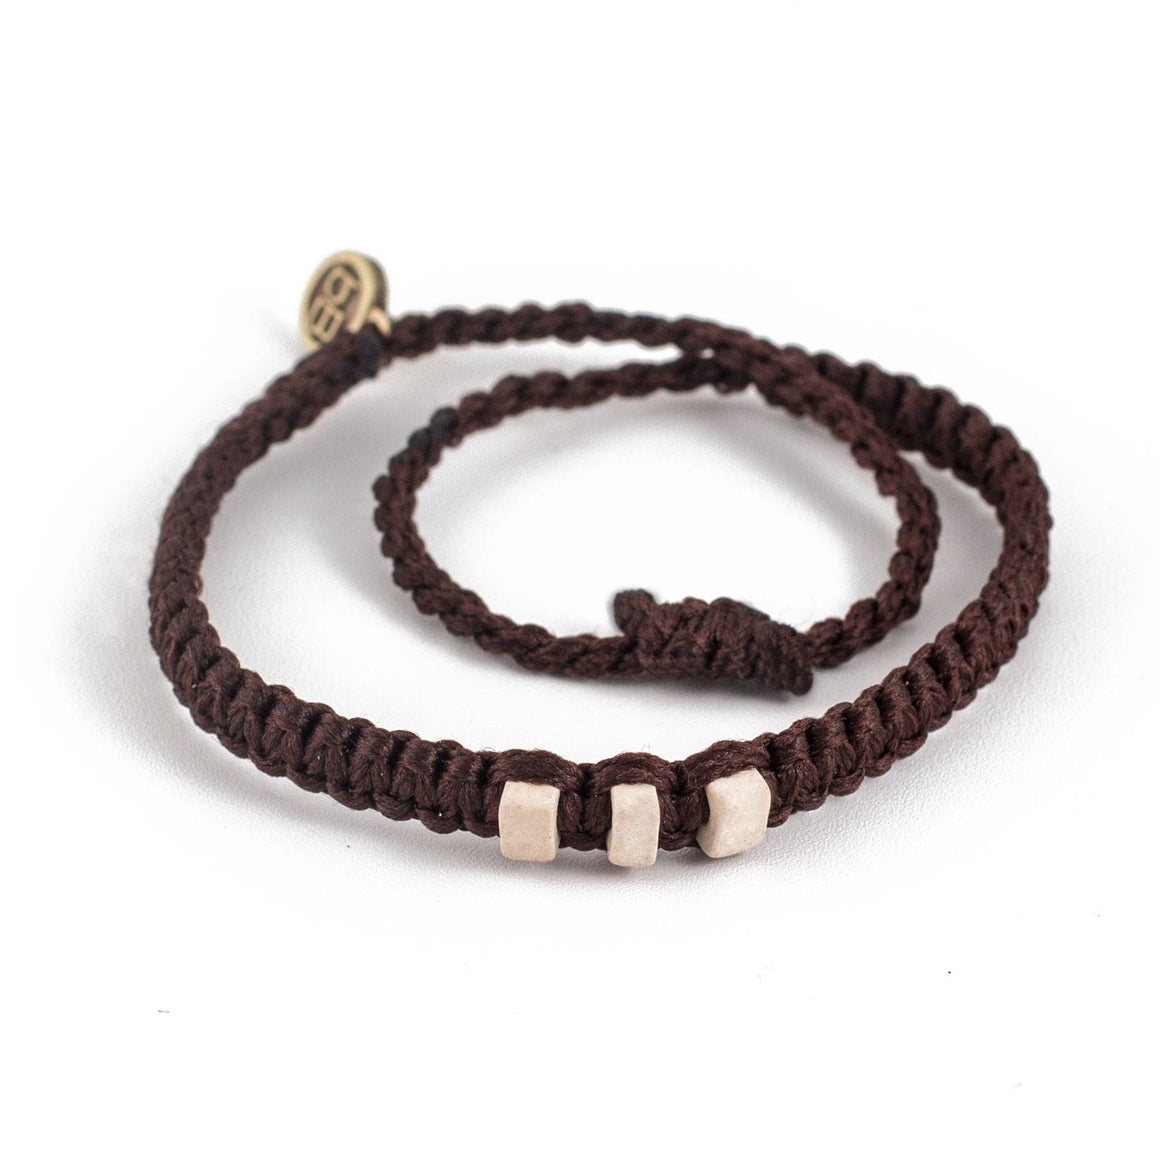 White Chasqui Chocolate Brown bracelets that help children cover